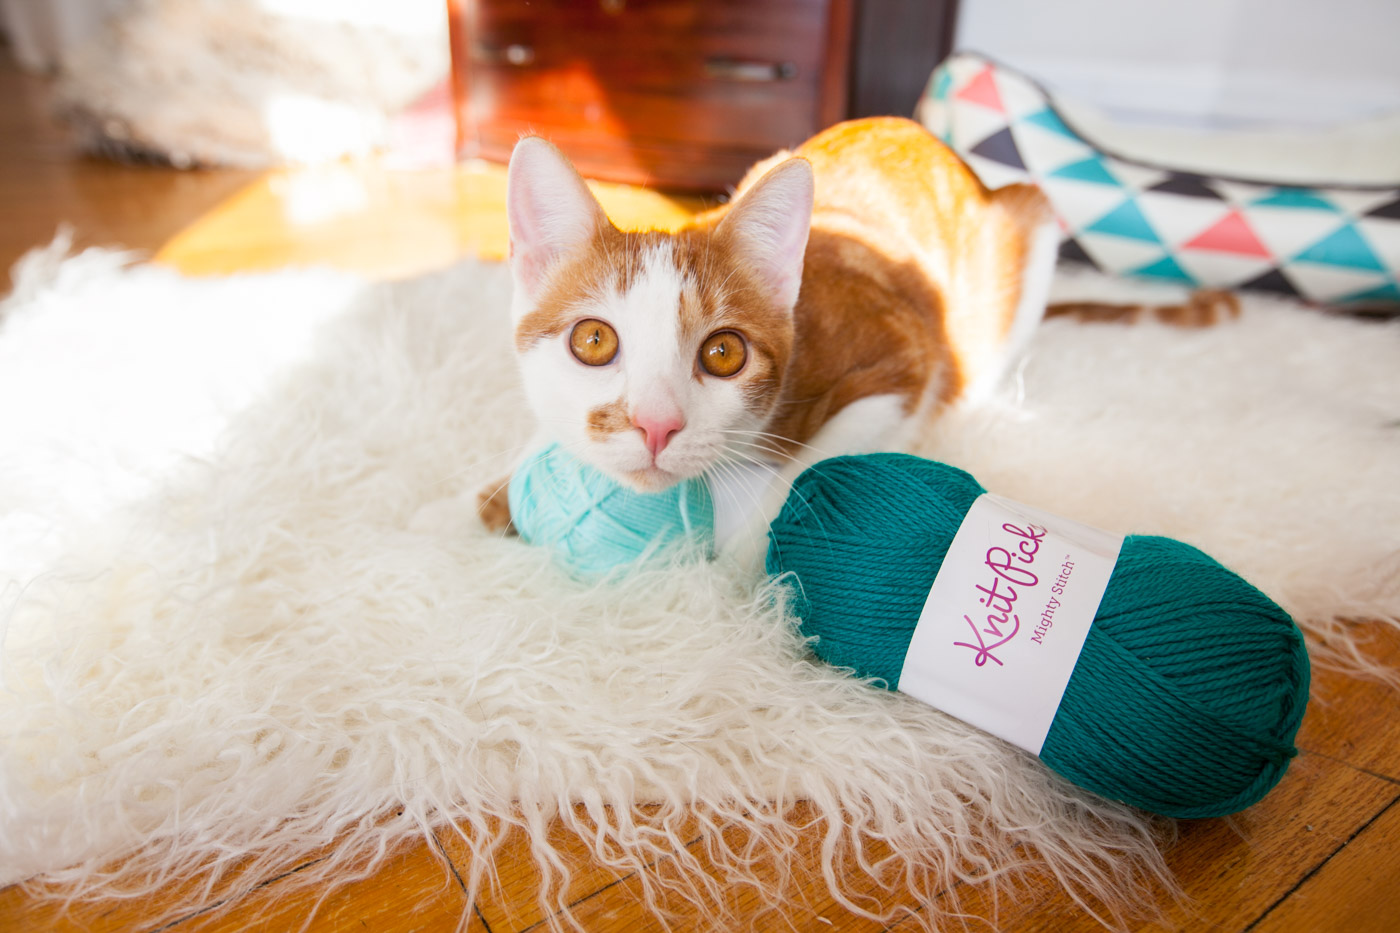 Cat playing with yarn.